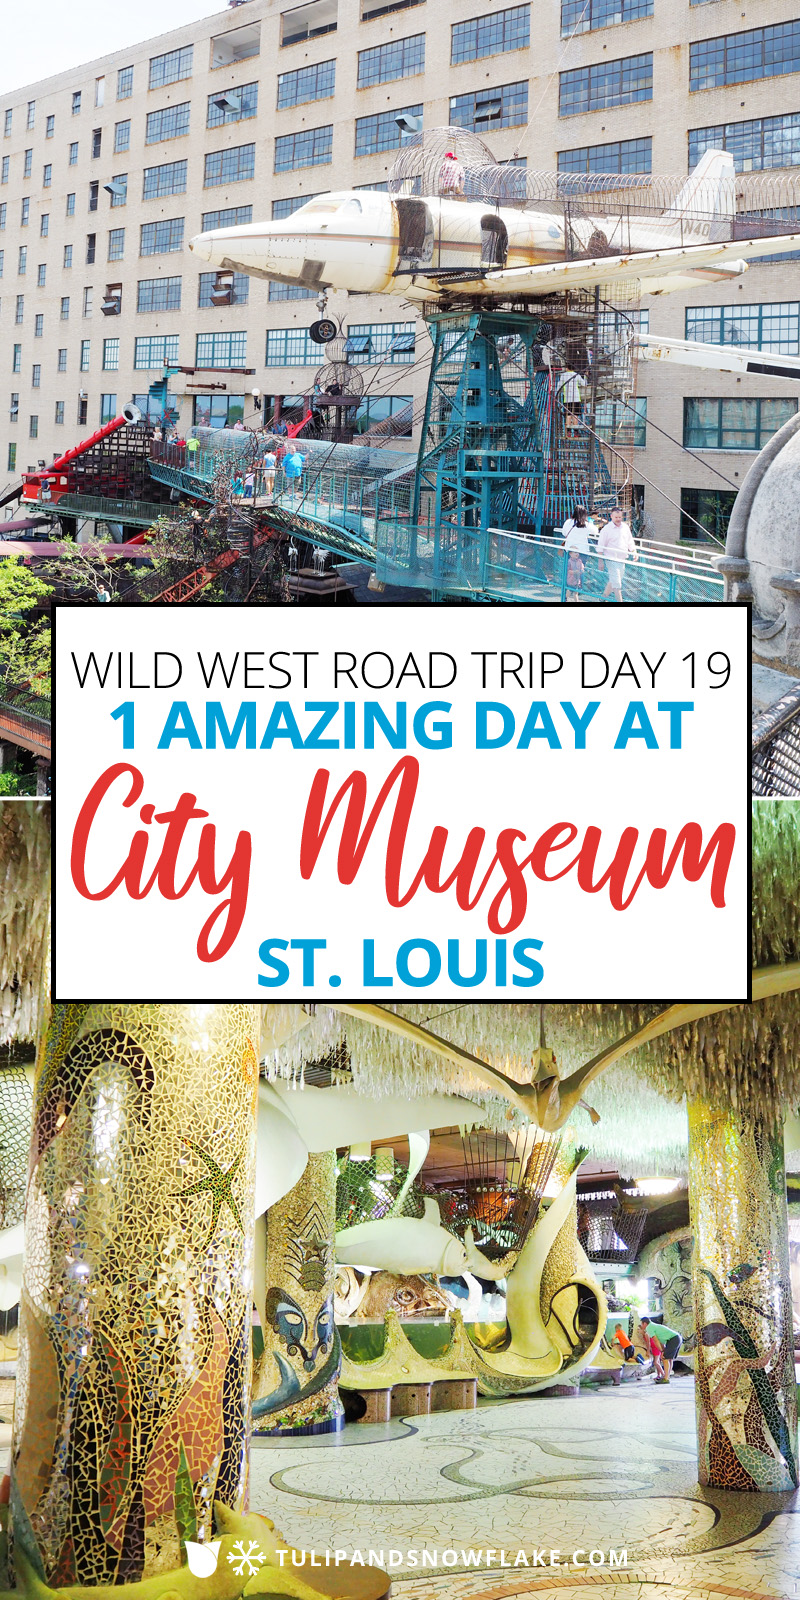 The City Museum St. Louis